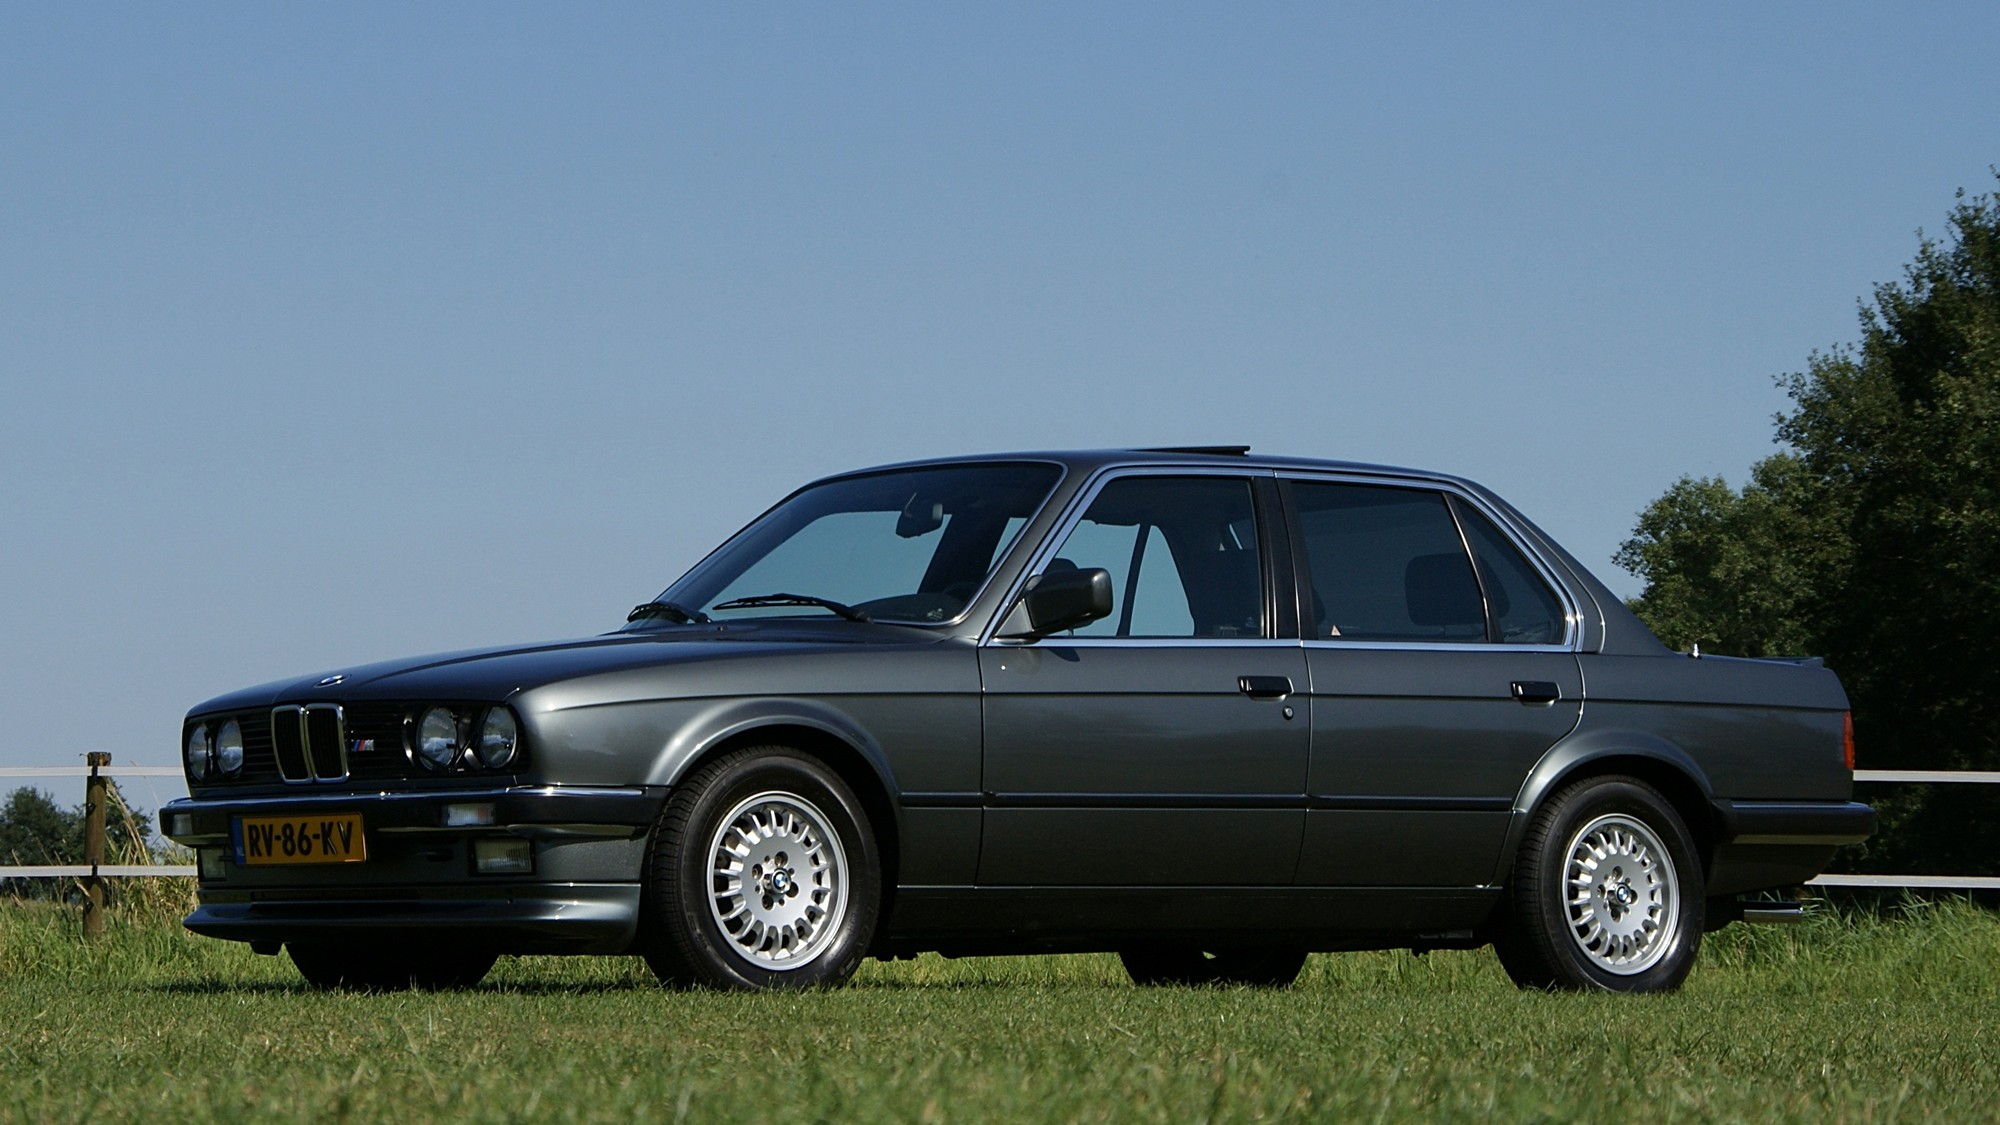 Elmark-online-automotive-content-marketing-1987-BMW-E30-320i-2000x1125